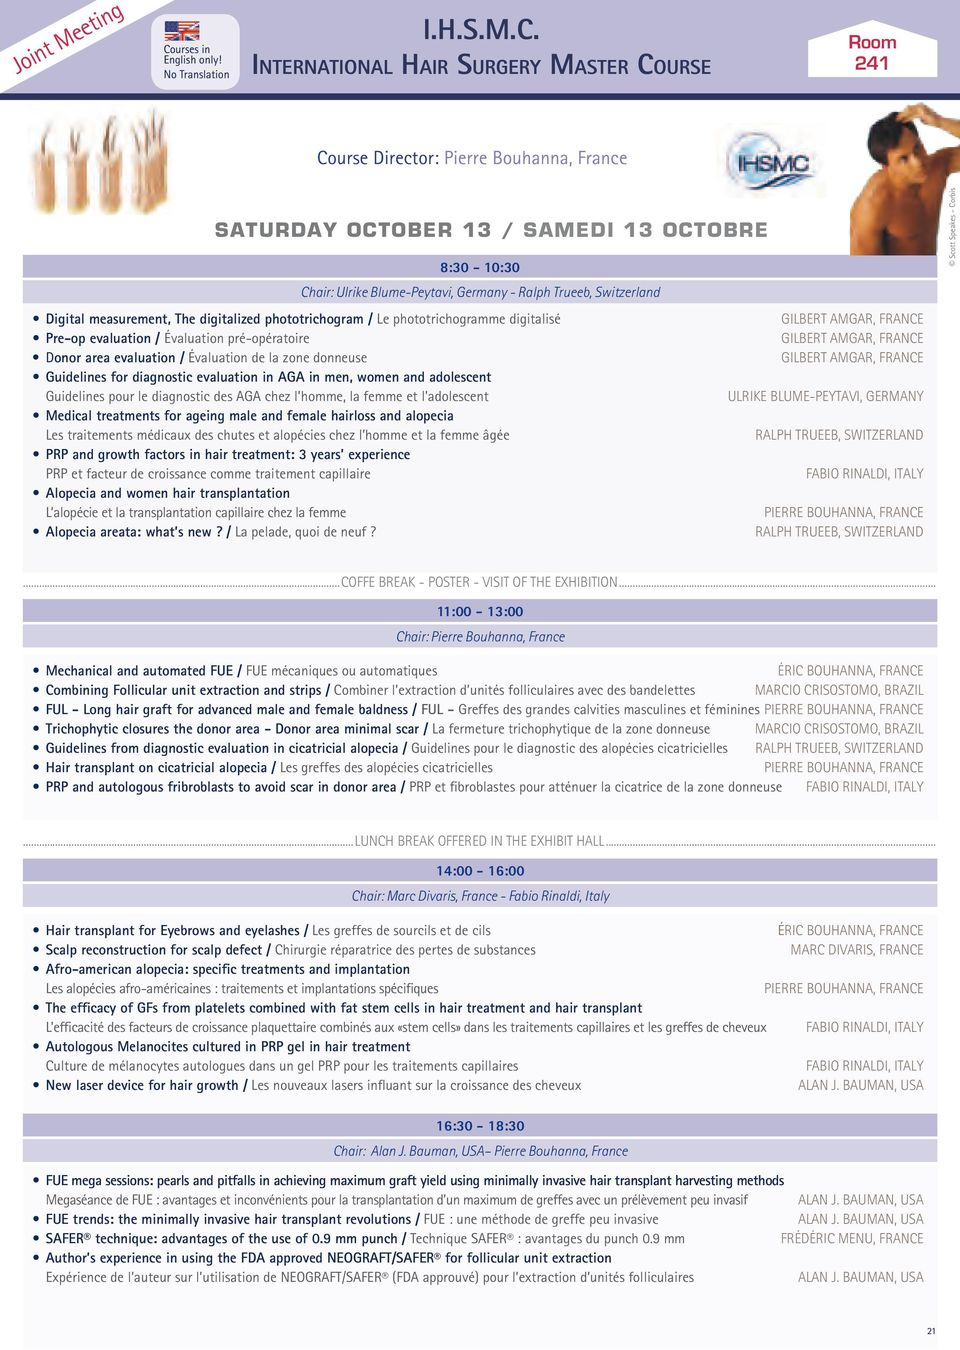 International Hair Surgery Master Course Room 241 Course Director: Pierre Bouhanna, France saturday october 13 / samedi 13 octobre 8:30-10:30 Chair: Ulrike Blume-Peytavi, Germany - Ralph Trueeb,